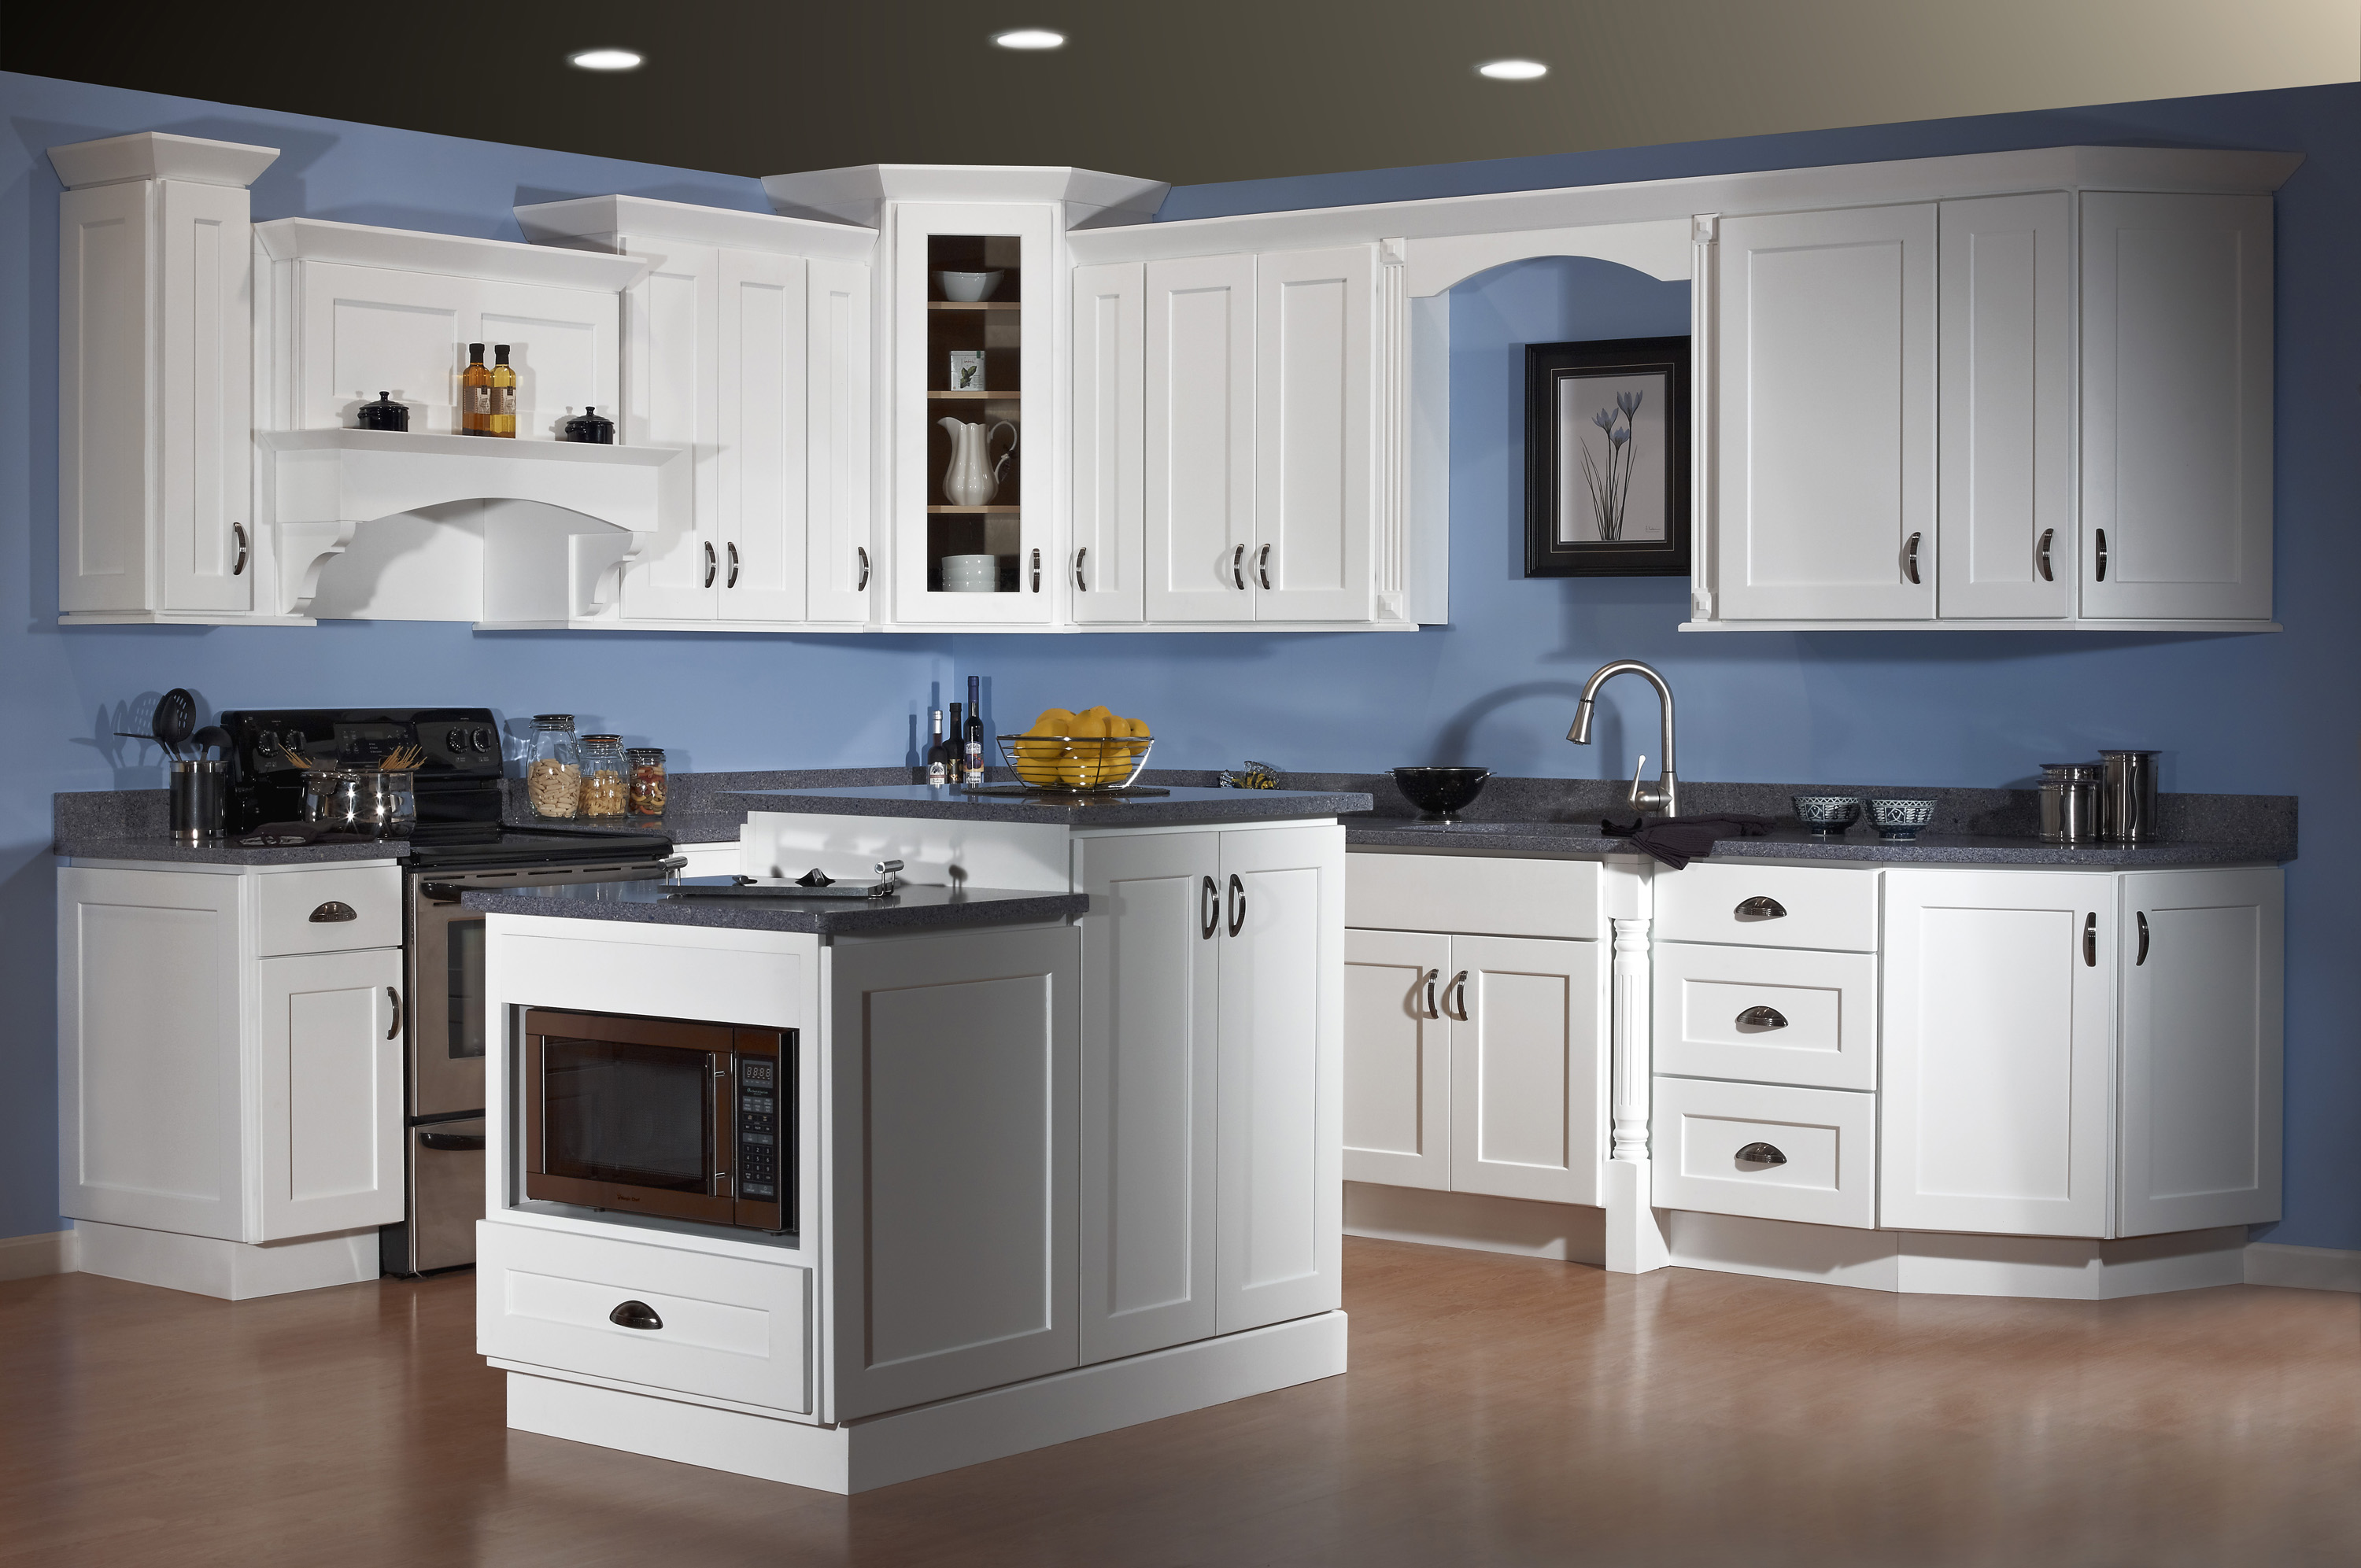 closenets slidessoft bestnet timberlake inspirationsinet cabinets undermount slides hardware door images unusual hardwaresoft formidable damper drawer bewitch full drawers soft closeinets inspirations of cabinet blum close size